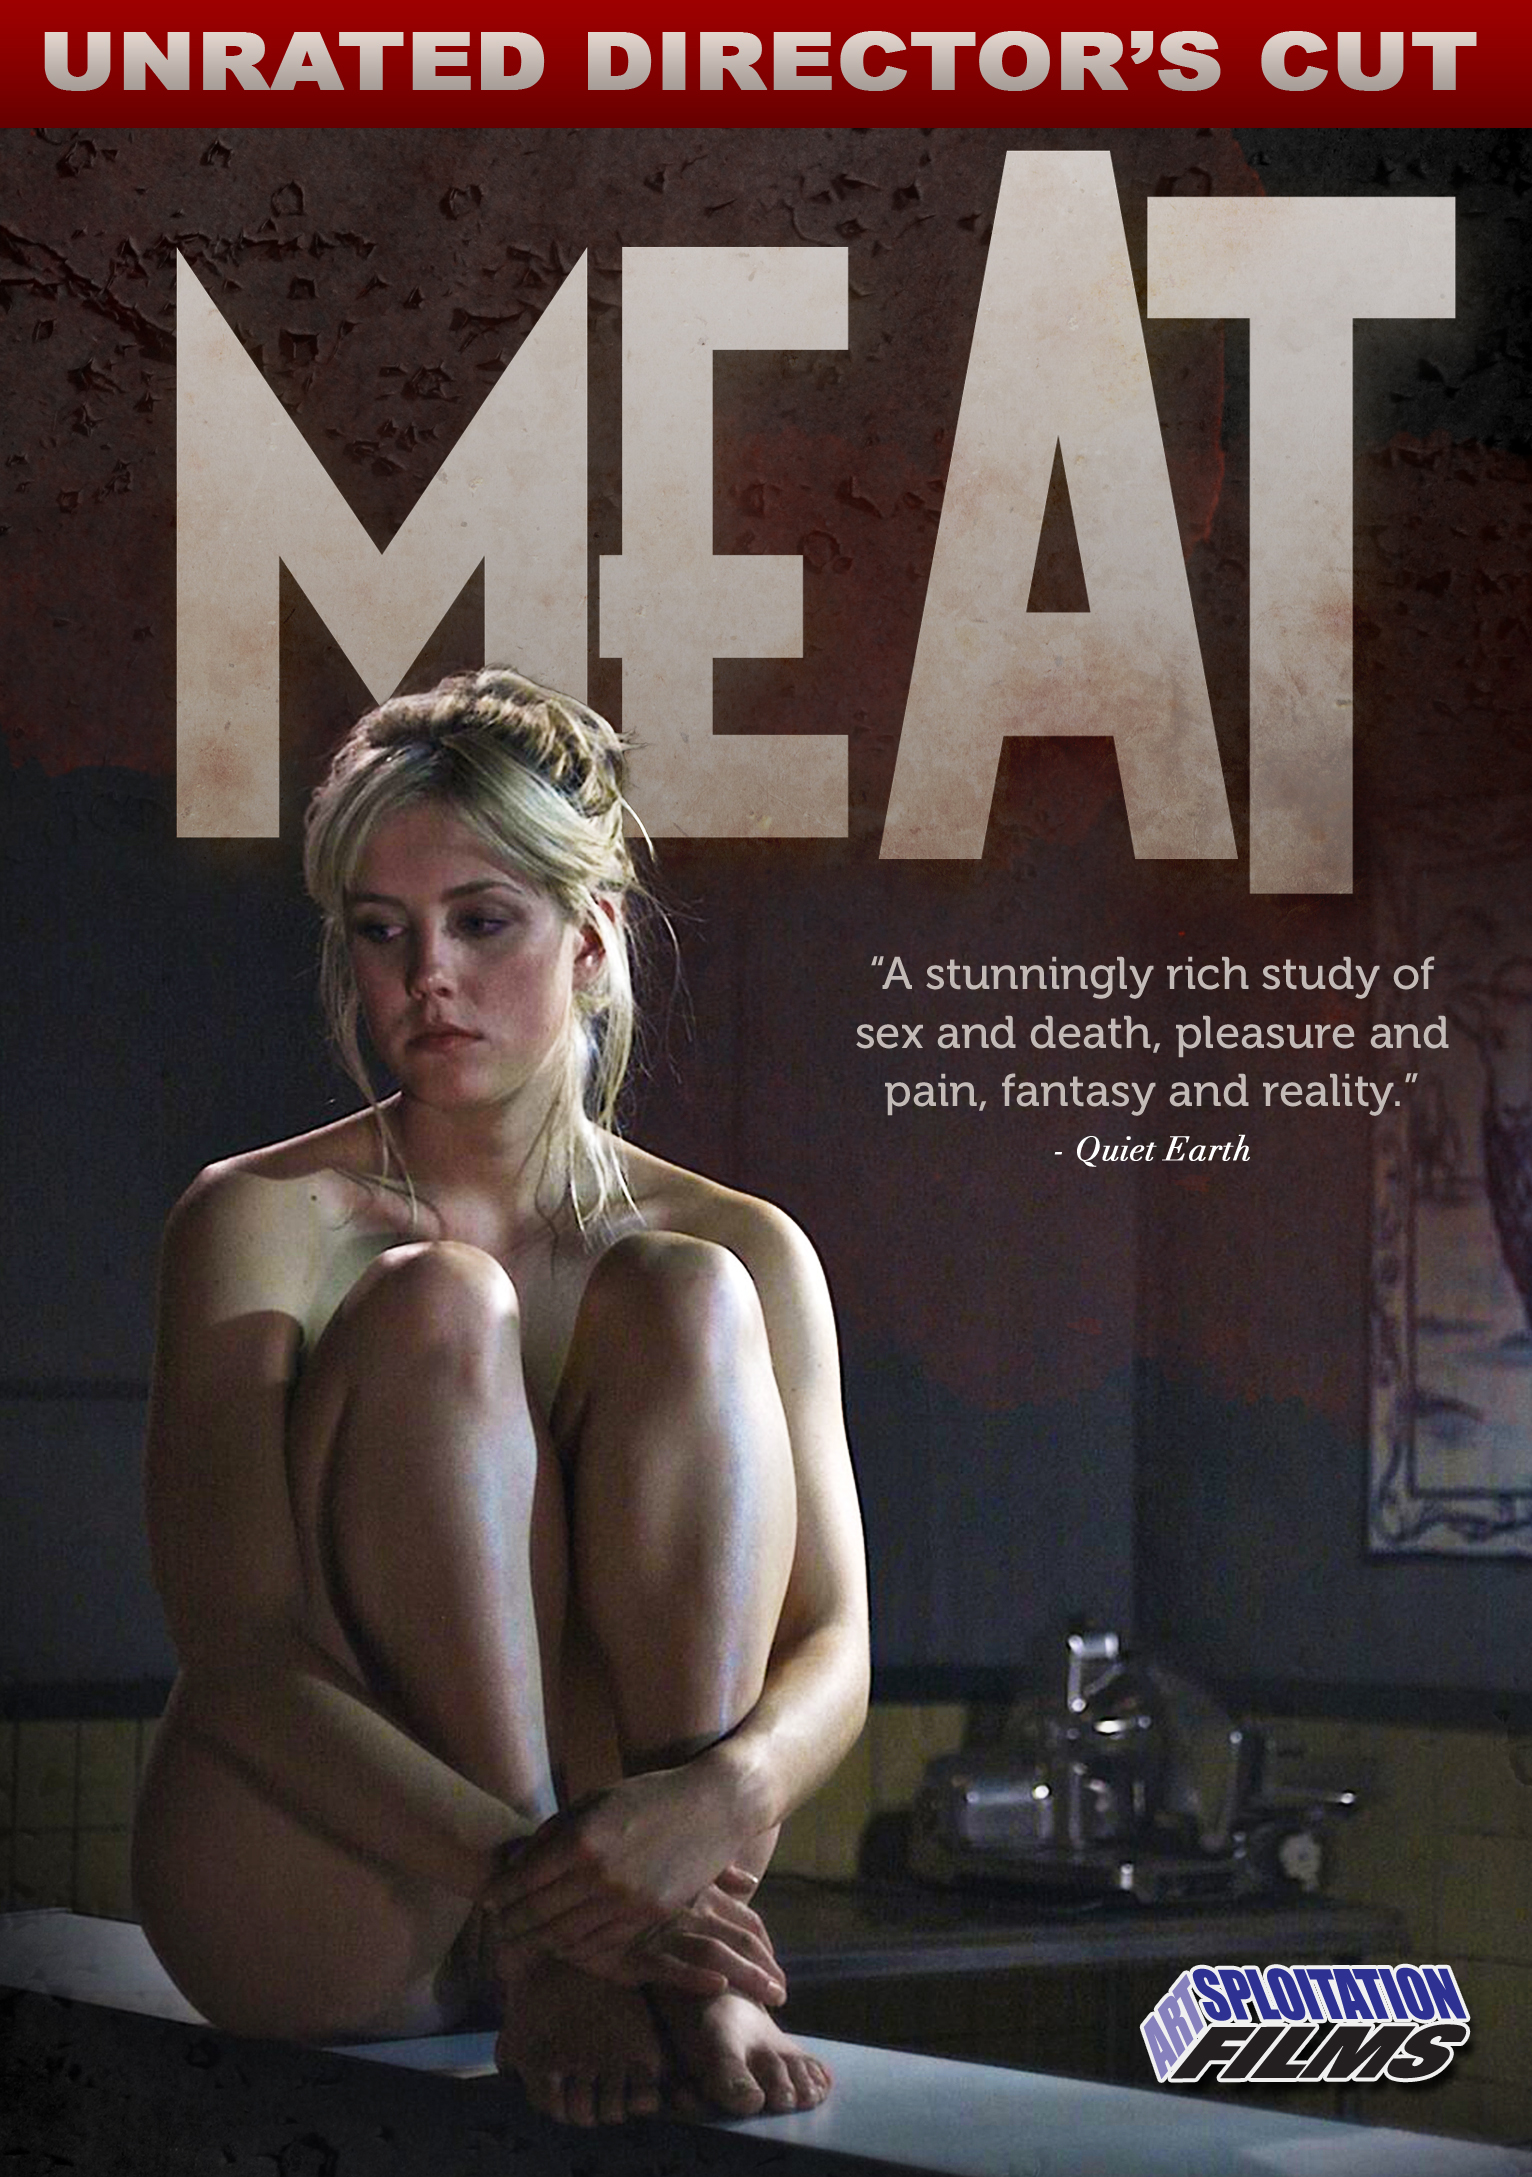 2010 Film Meat Comes To Vod  Amazon  Hnn-6580